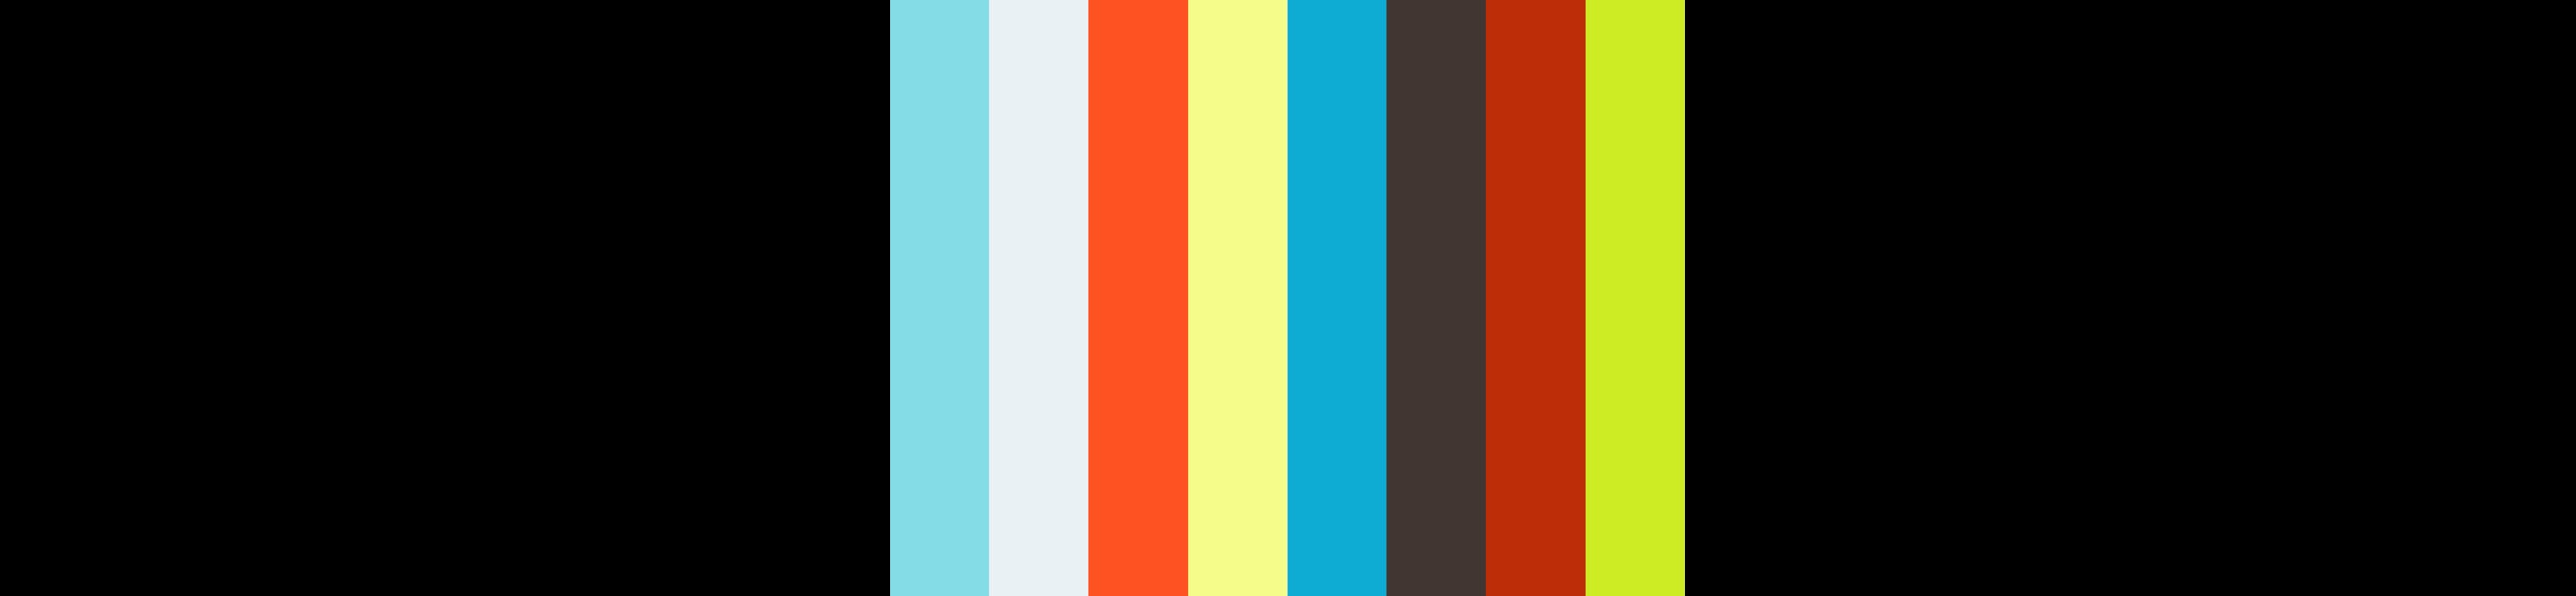 Hank & Harry's Digital Menu Boards by EyeCatch